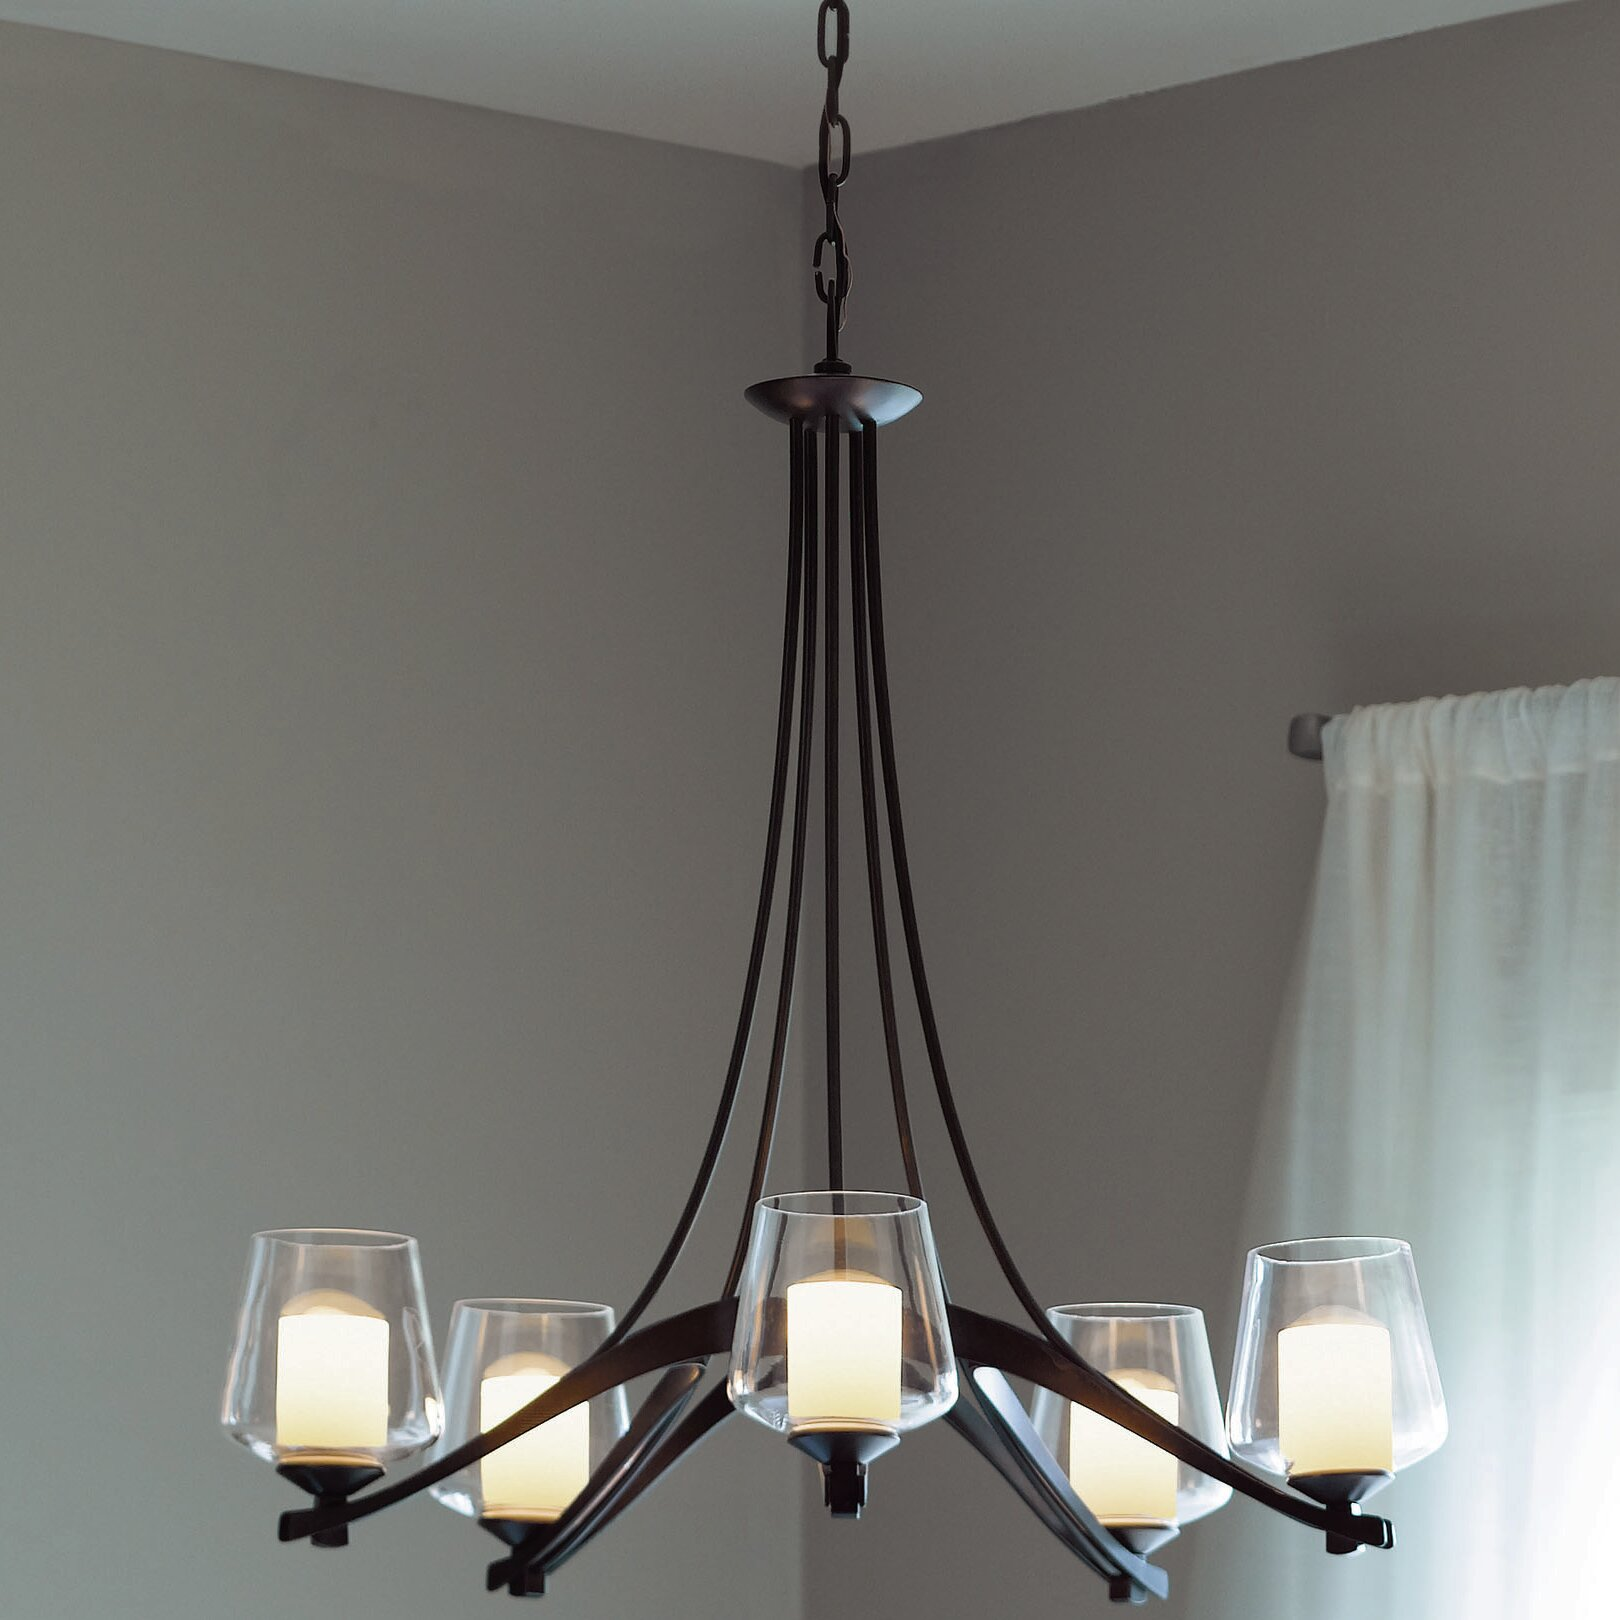 Hubbardton Forge Ribbon 6 Light Shaded Classic Traditional Chandelier Perigold